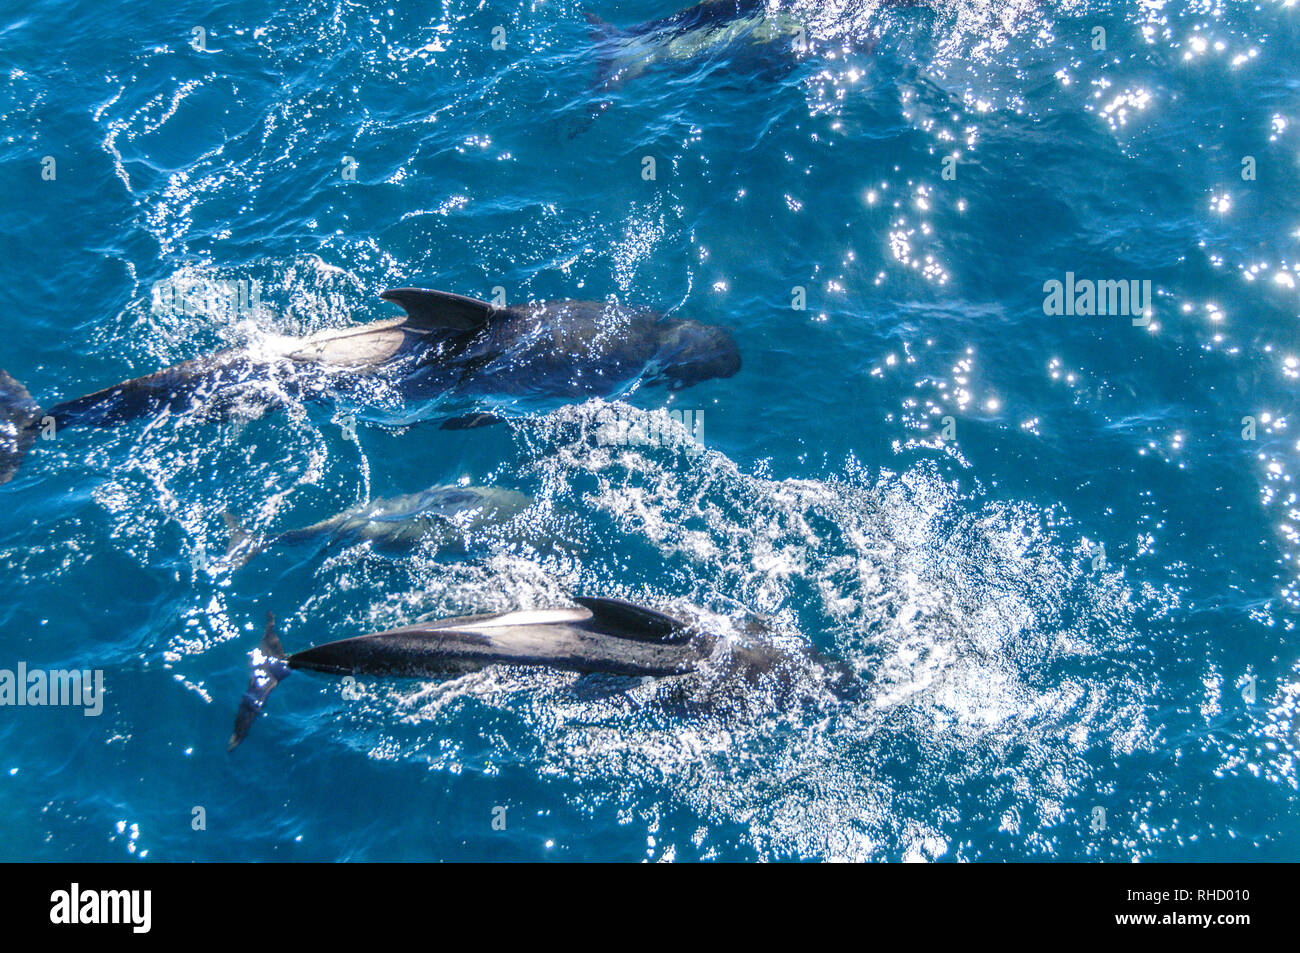 Long-Finned Pilot Whales in the Southern Atlantic Ocean - Stock Image